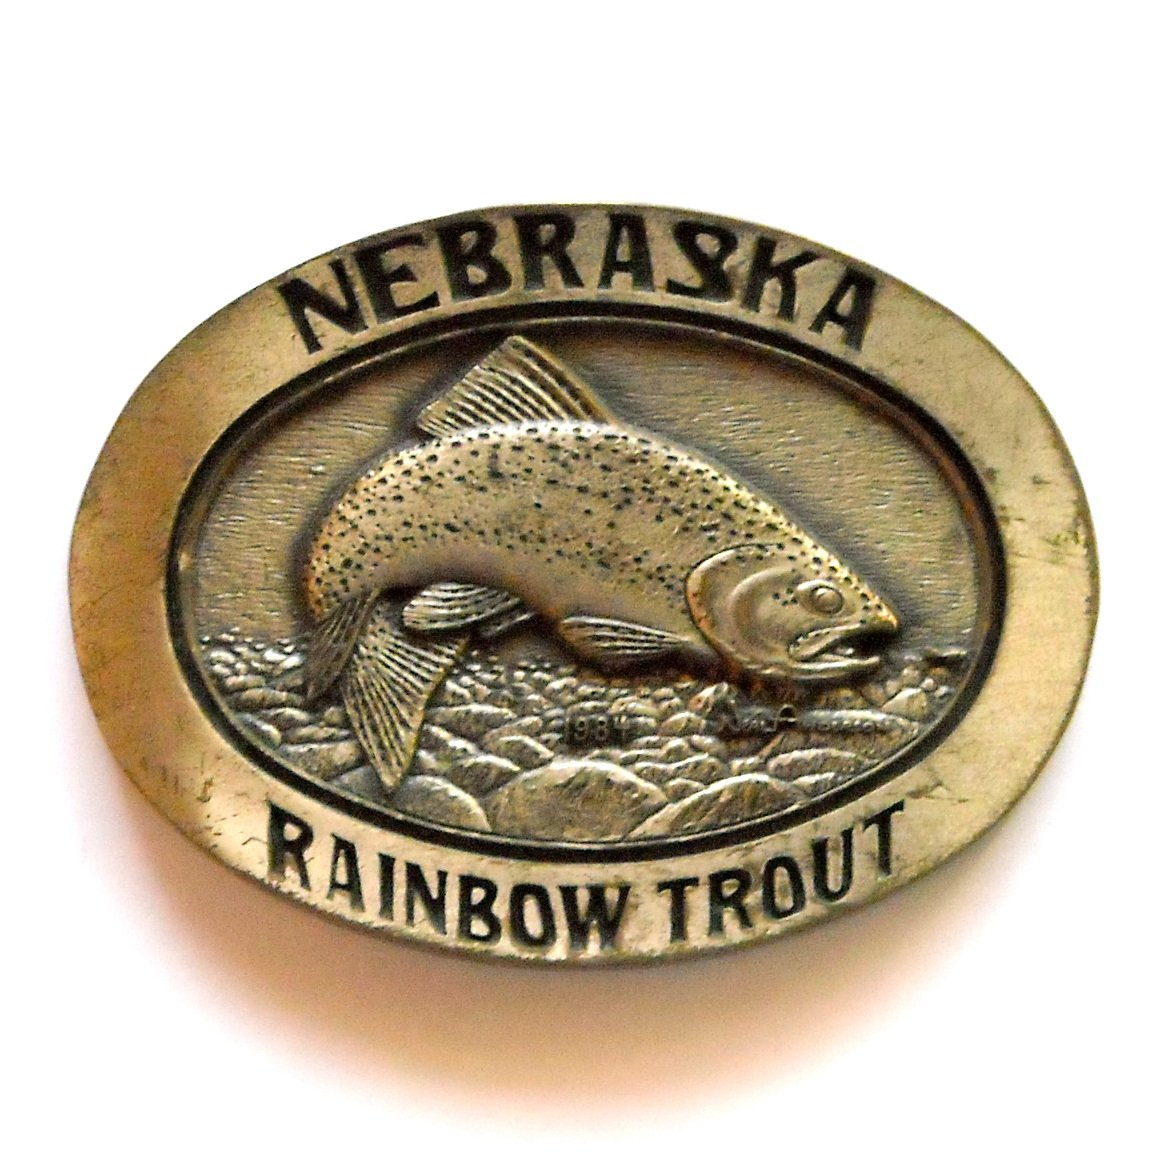 Nebraska Rainbow Trout Award Design solid brass Limited Edition # 114 belt buckle